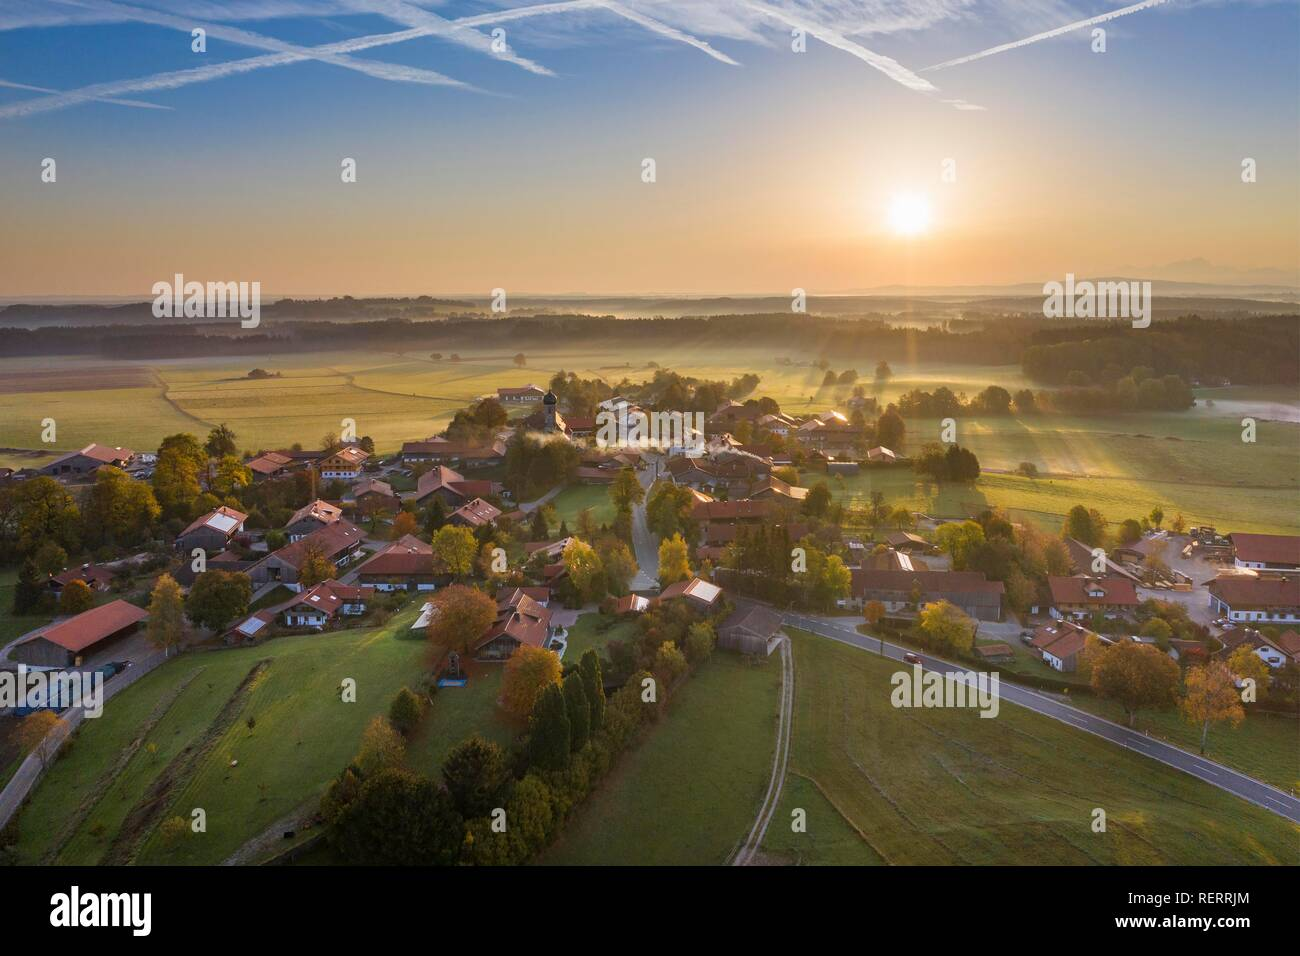 Sunrise, punching at Dietramszell, drone view, Tölzer Land, Upper Bavaria, Bavaria, Germany - Stock Image